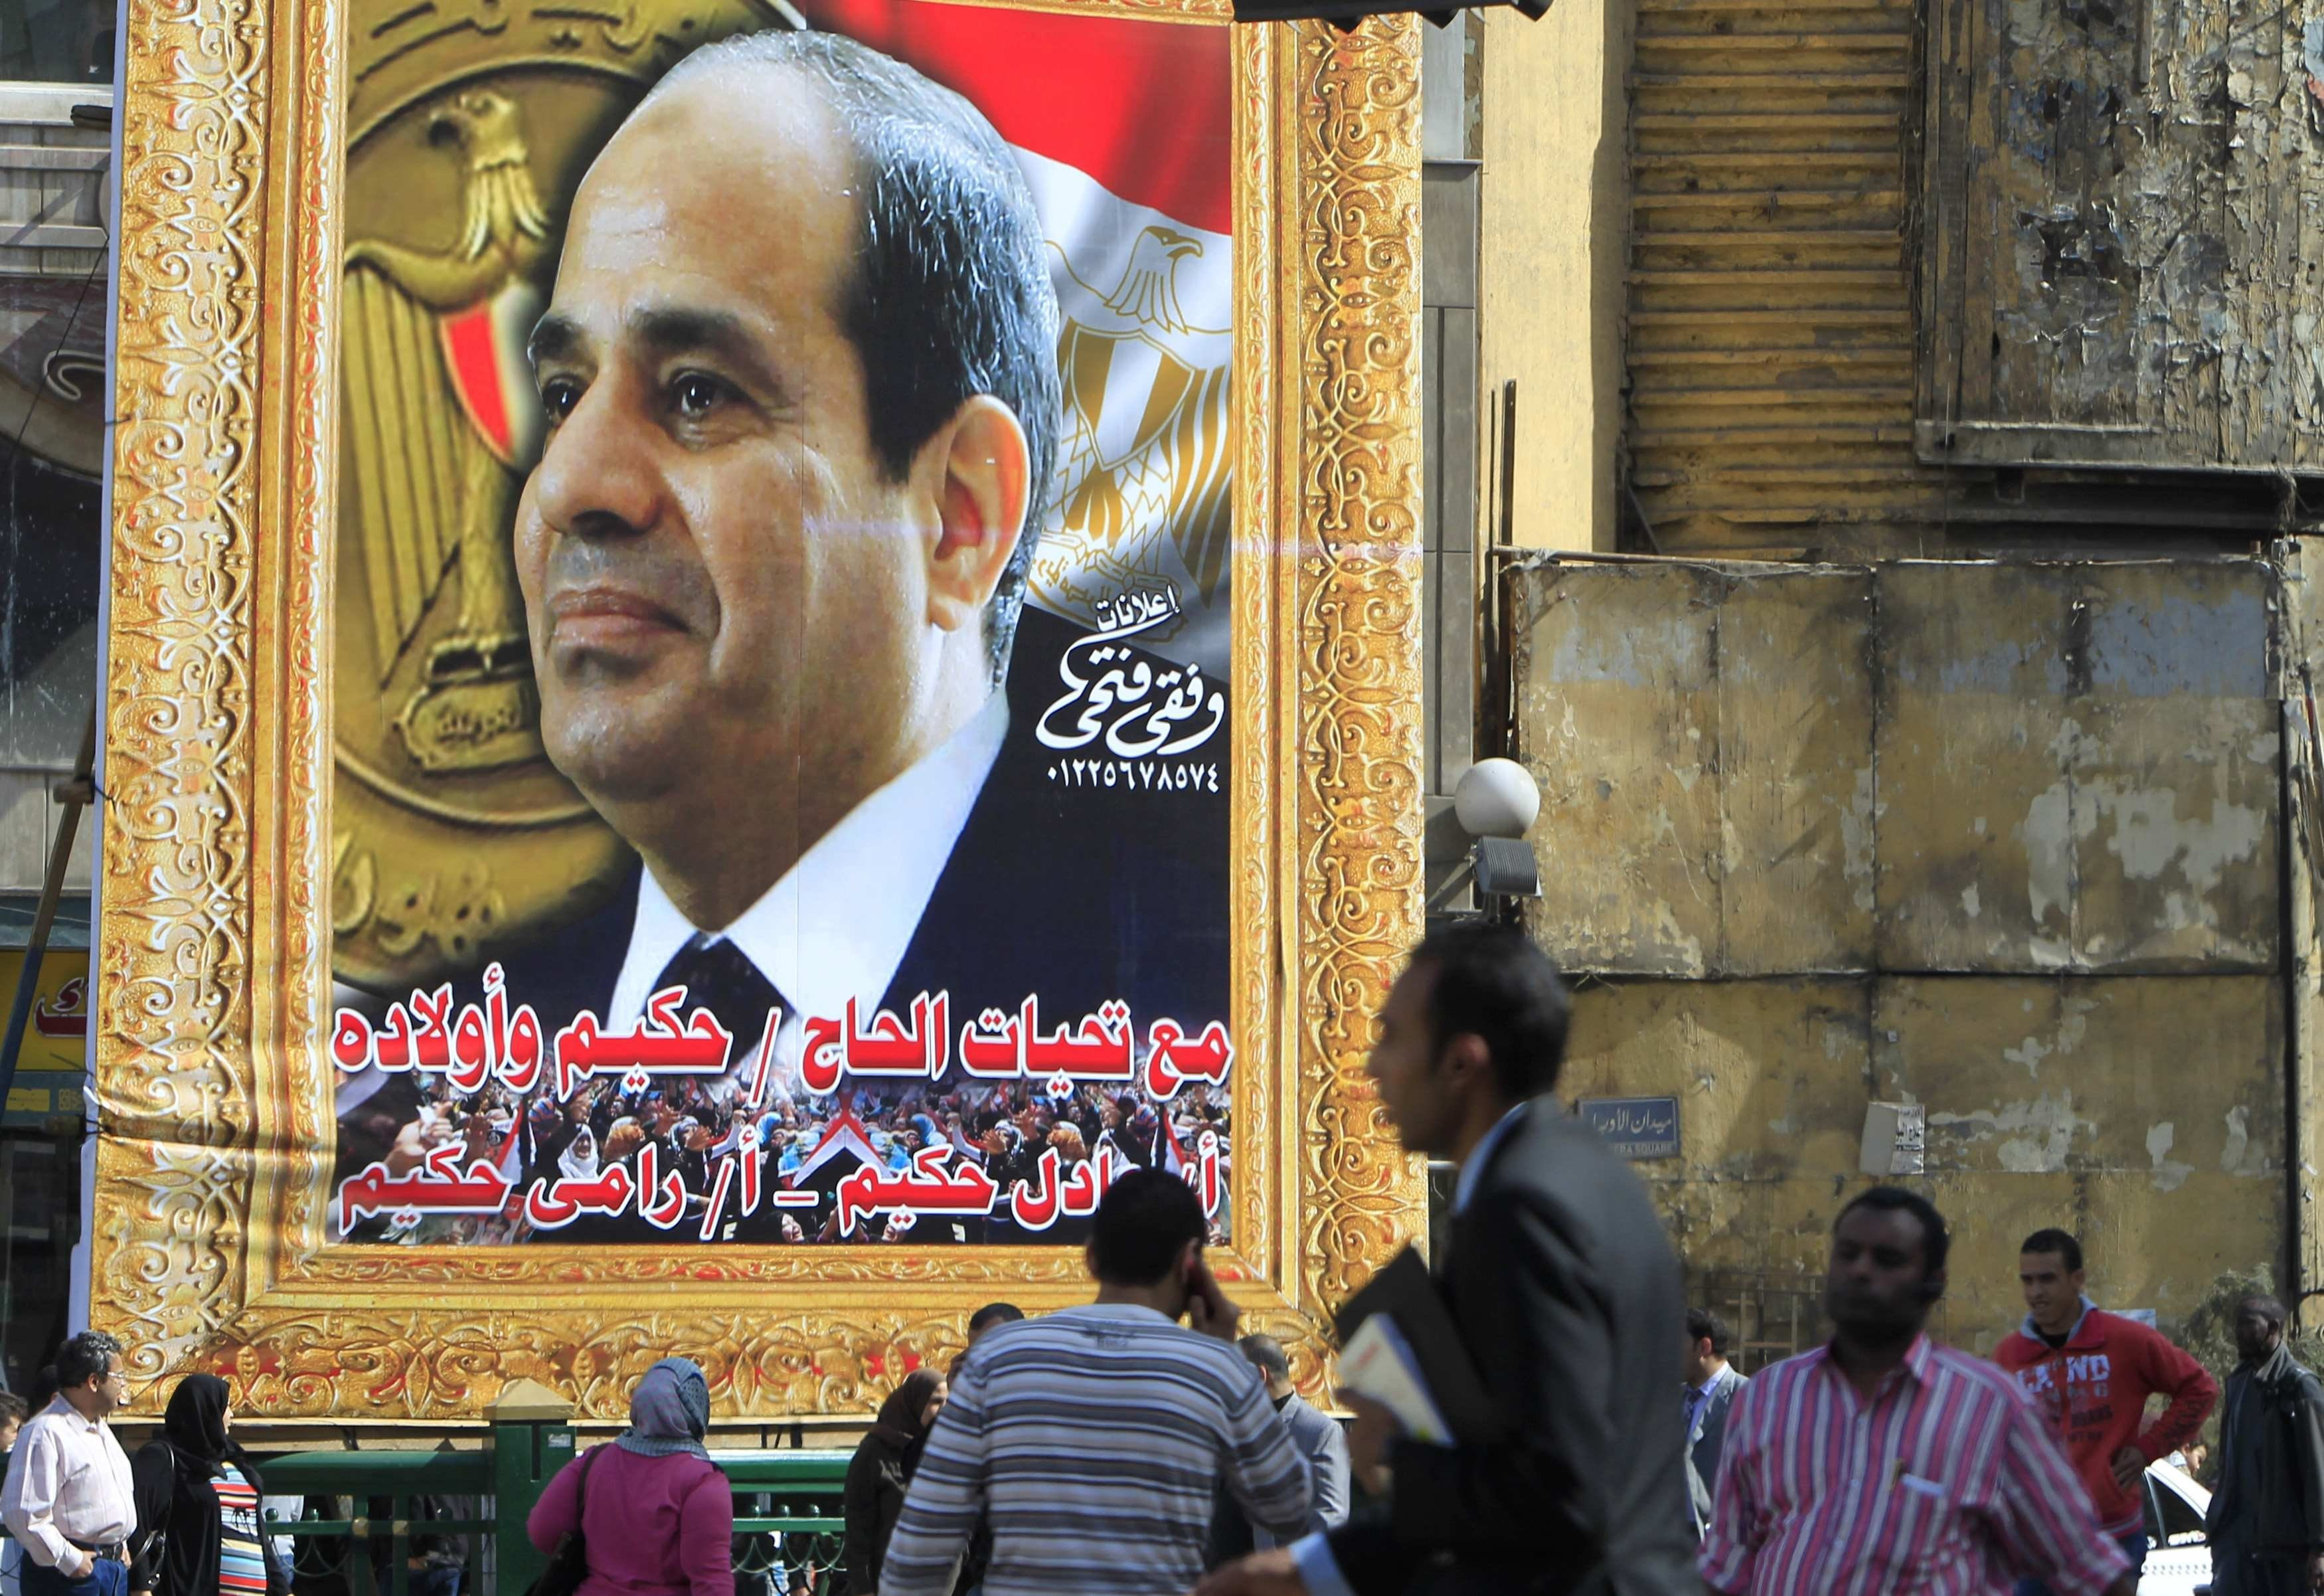 People walk past a banner for Egypt's army chief Field Marshal Abdel Fattah al-Sisi in downtown Cairo March 26, 2014.